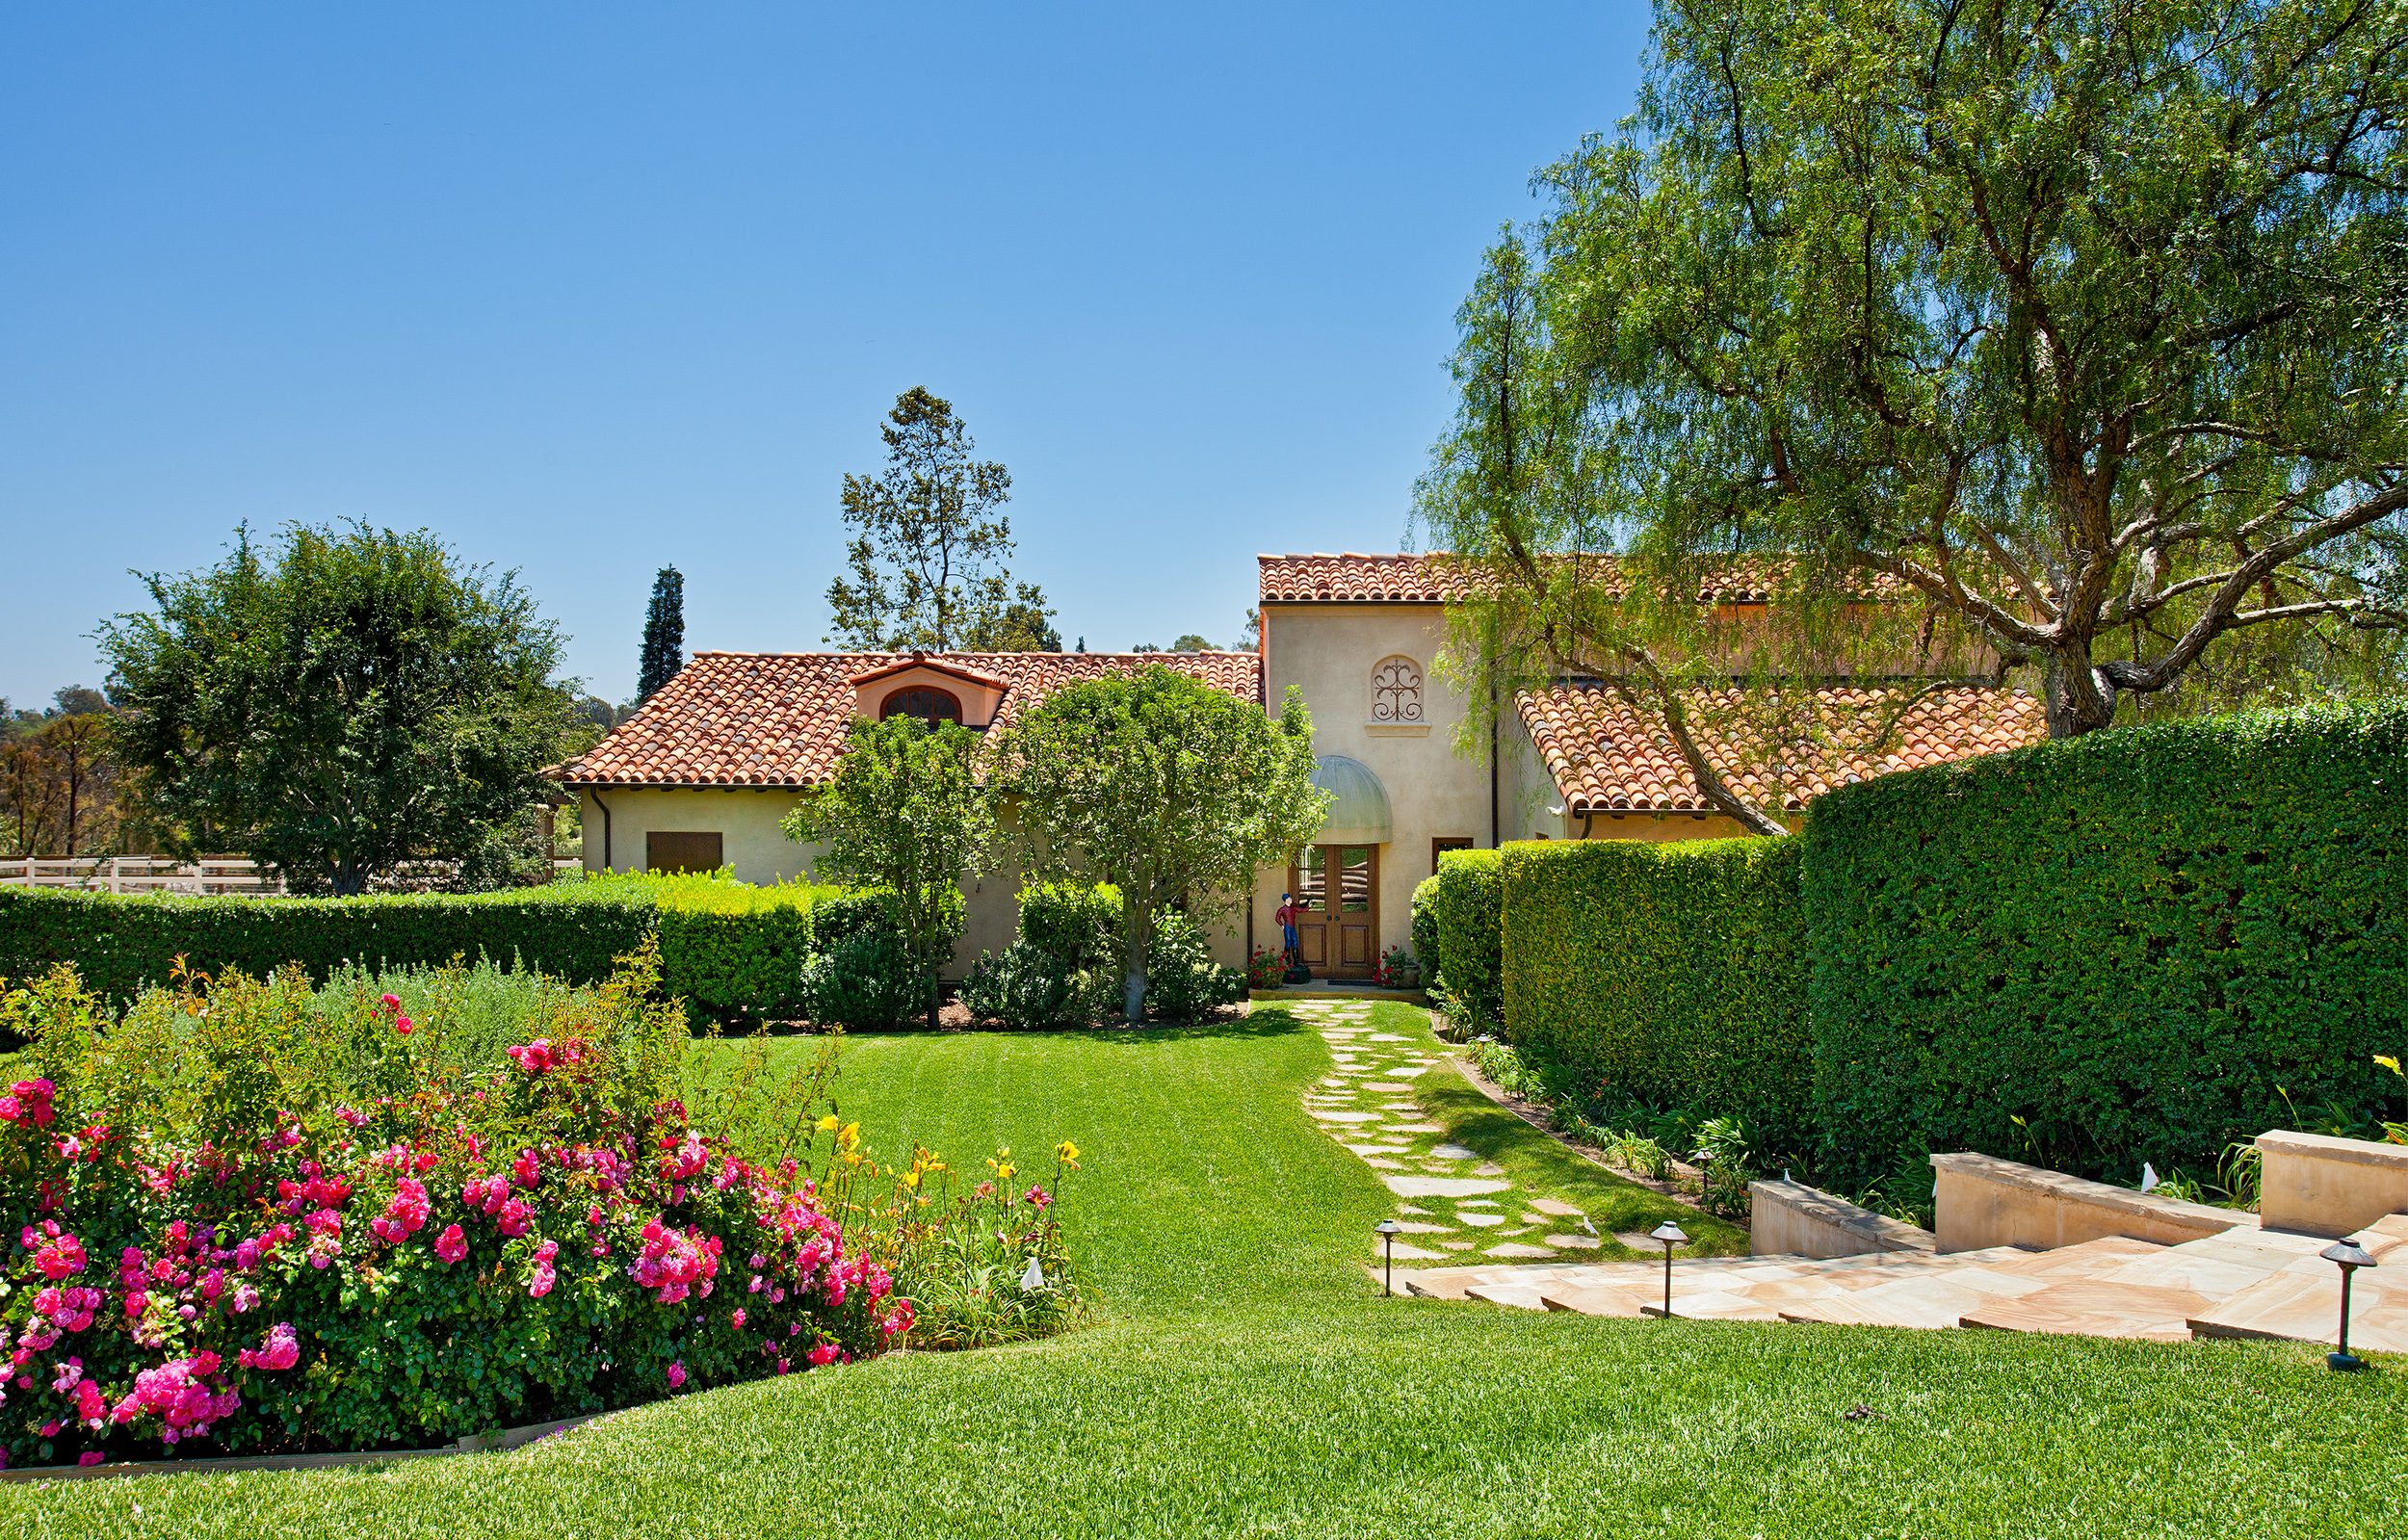 Sold 2017 Represented Buyer & Seller -  Rancho Santa Fe Covenant, CA 92067